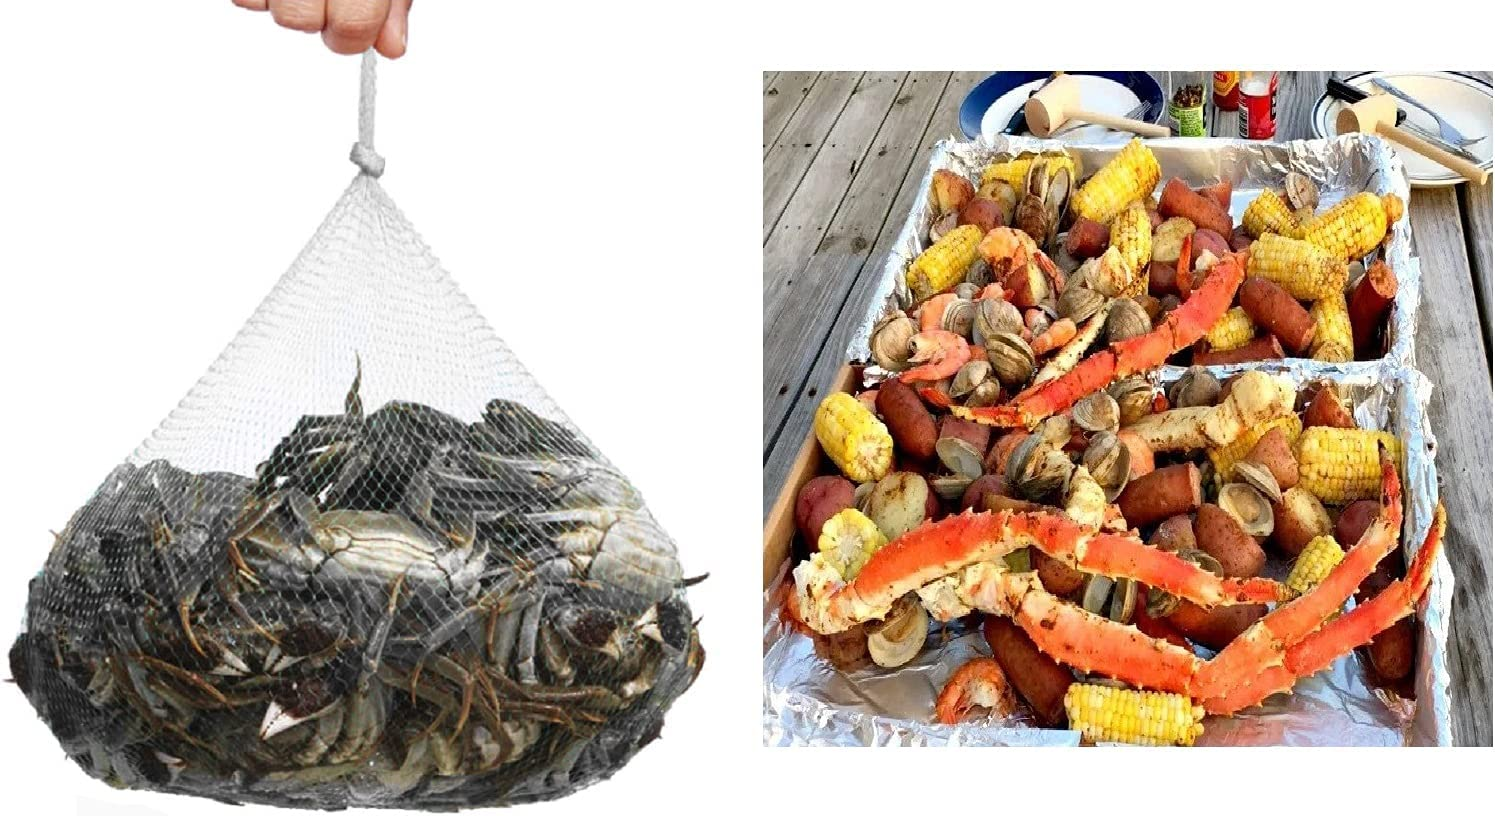 Zanup 50 Pcs 27 Inch Seafood Boiling Bags for Crab Crawfish Shellfish, Mesh Plastic Produce Bags Reusable Fruit and Vegetable Packaging Net